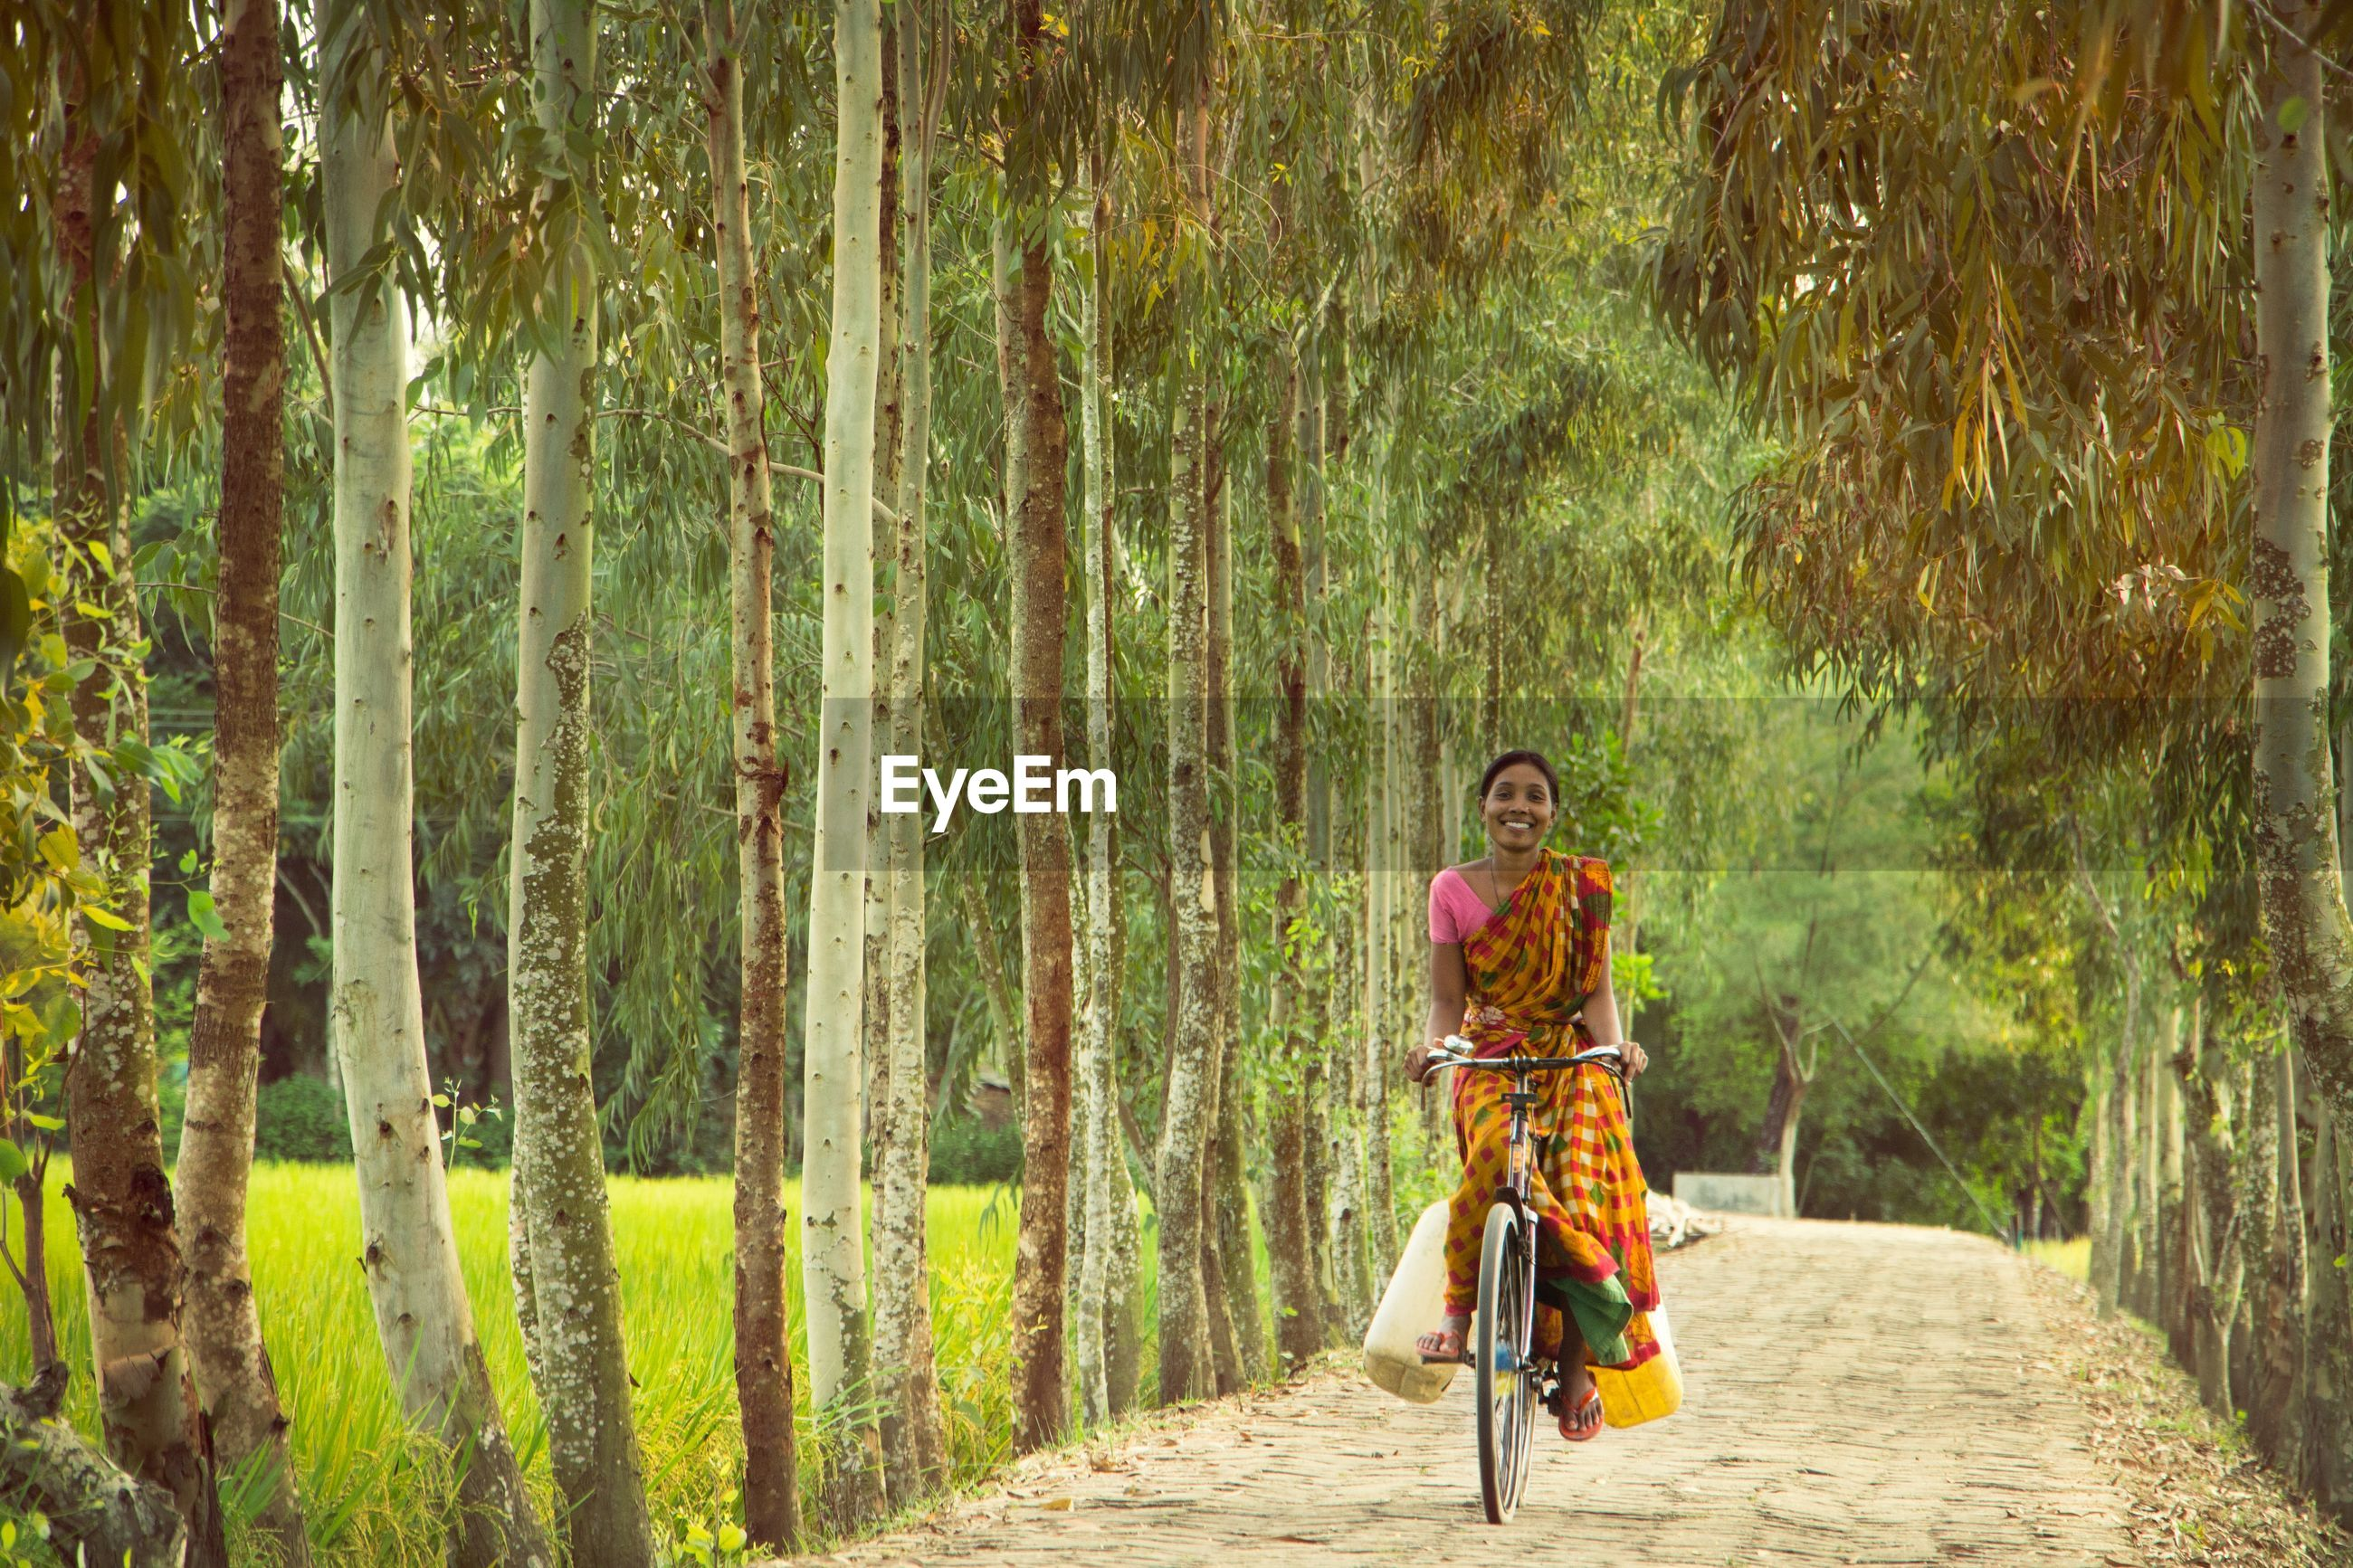 MAN RIDING BICYCLE ON ROAD IN FOREST